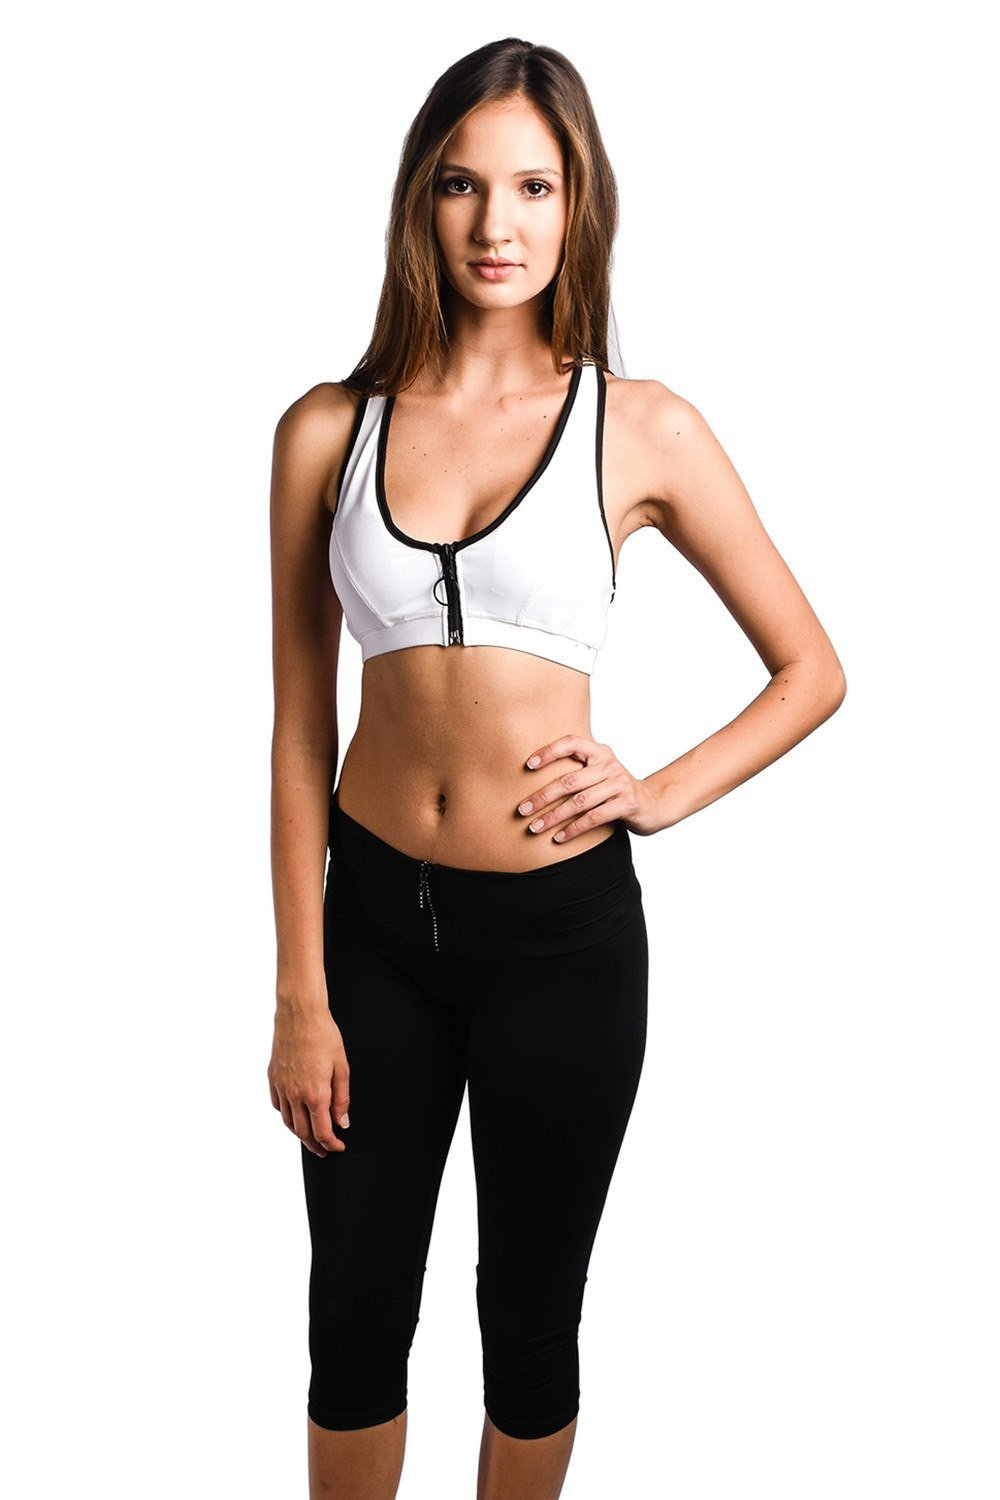 Sauvage Swimwear, Designer Swimwear from San Diego, CA made in usaMonaco Zip-up Sports Bra, , , Sauvage Swimwear, Sauvage - 2